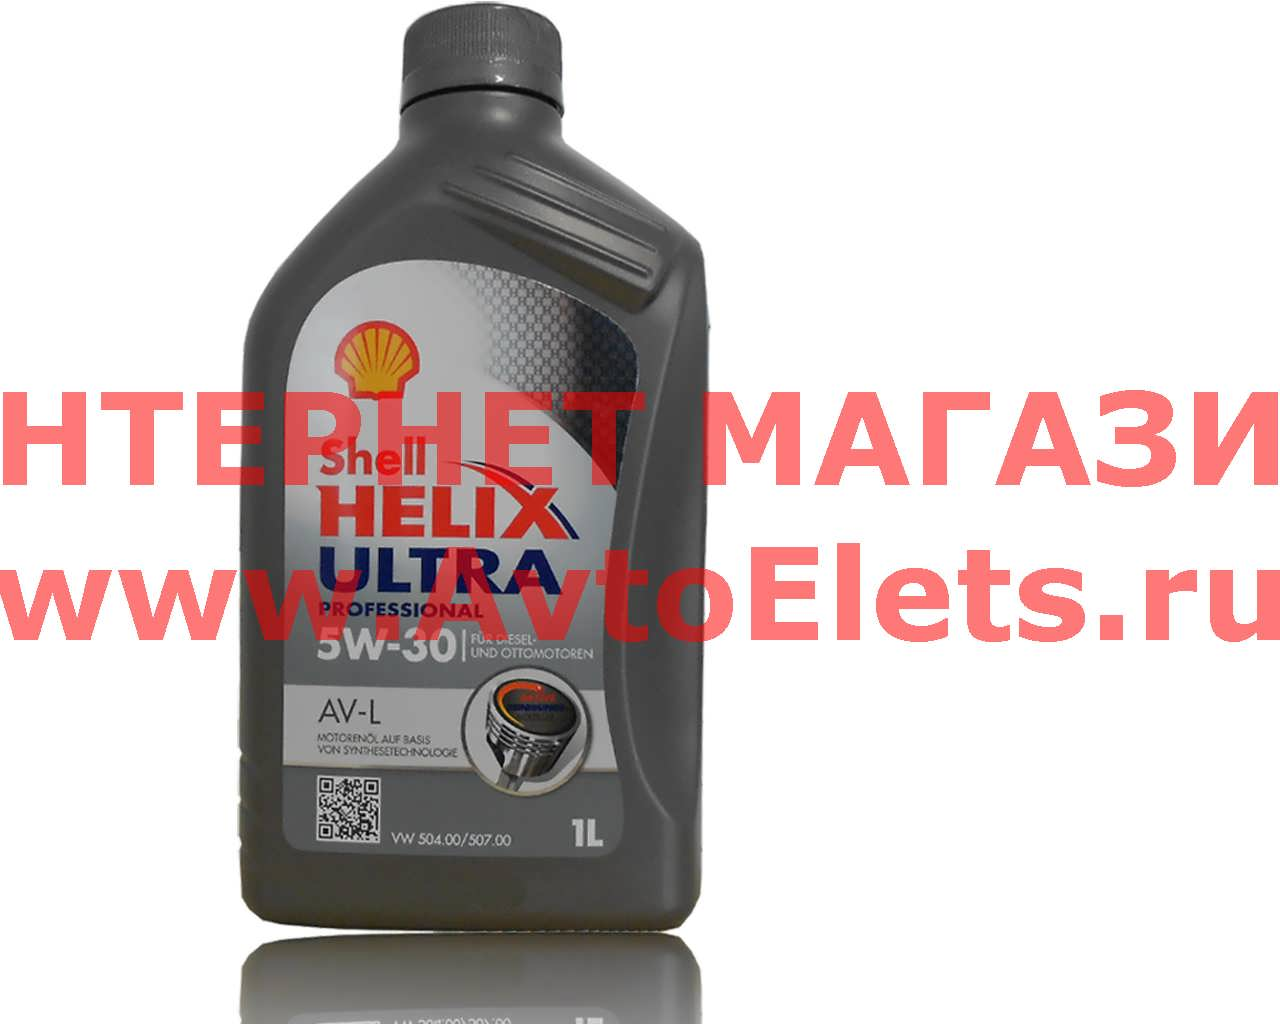 Shell Helix Ultra Extra Sae 5W 30